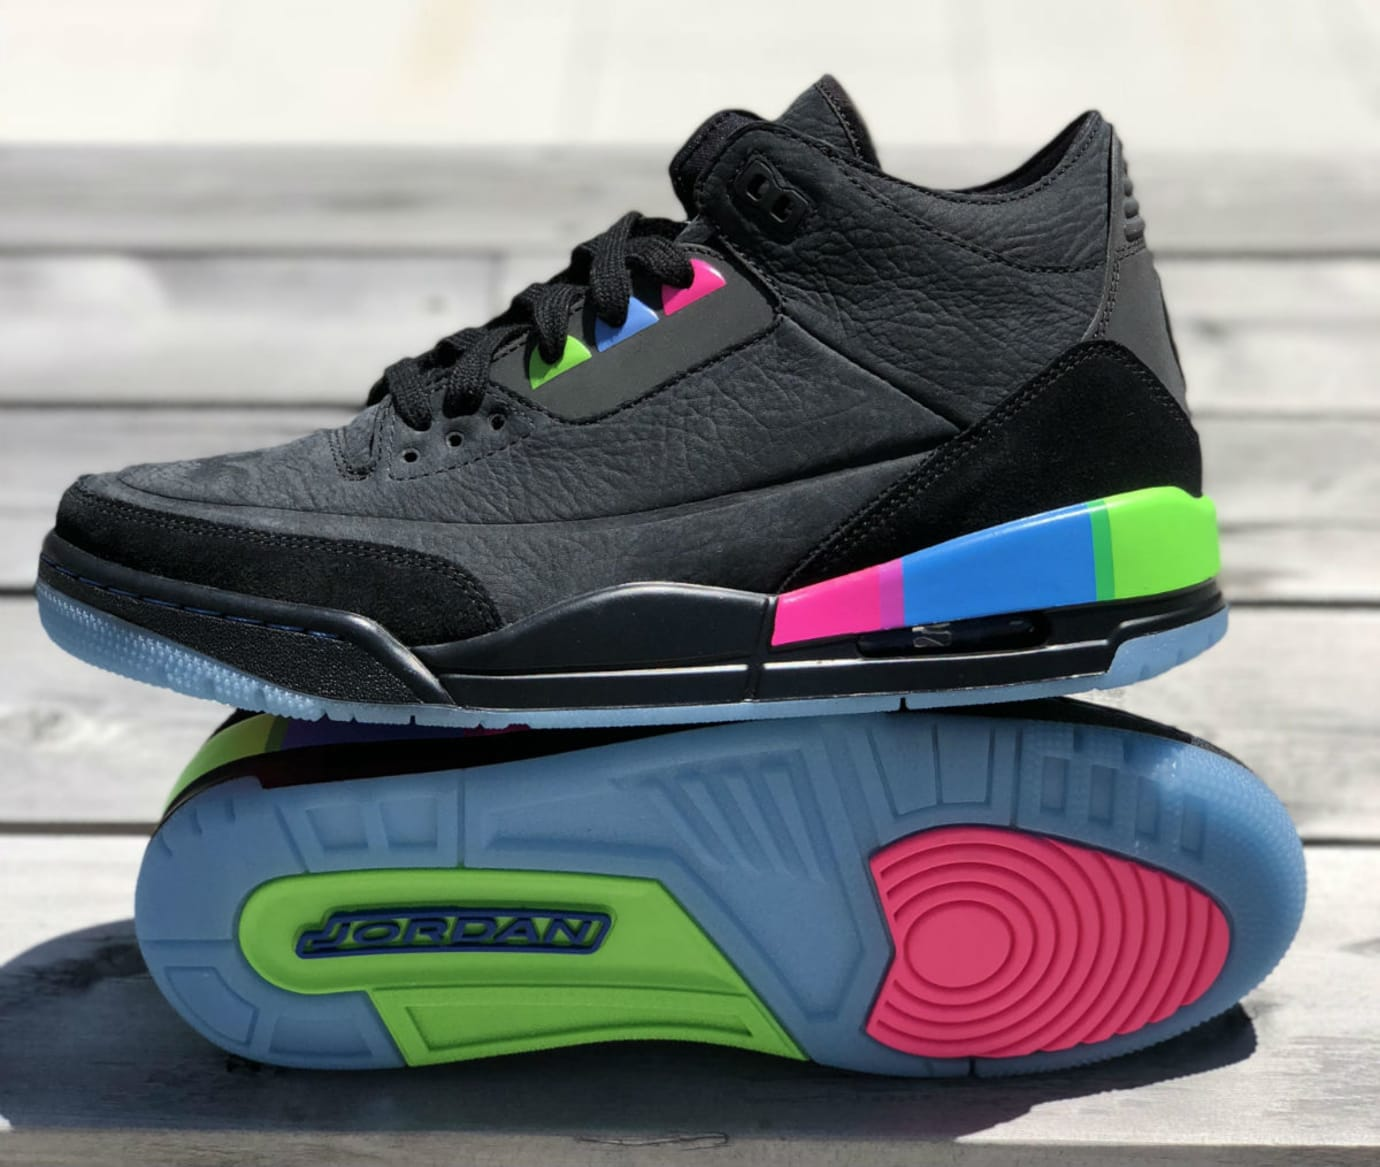 Air Jordan 3 III Quai 54 Release Date AT9195-001 Sole